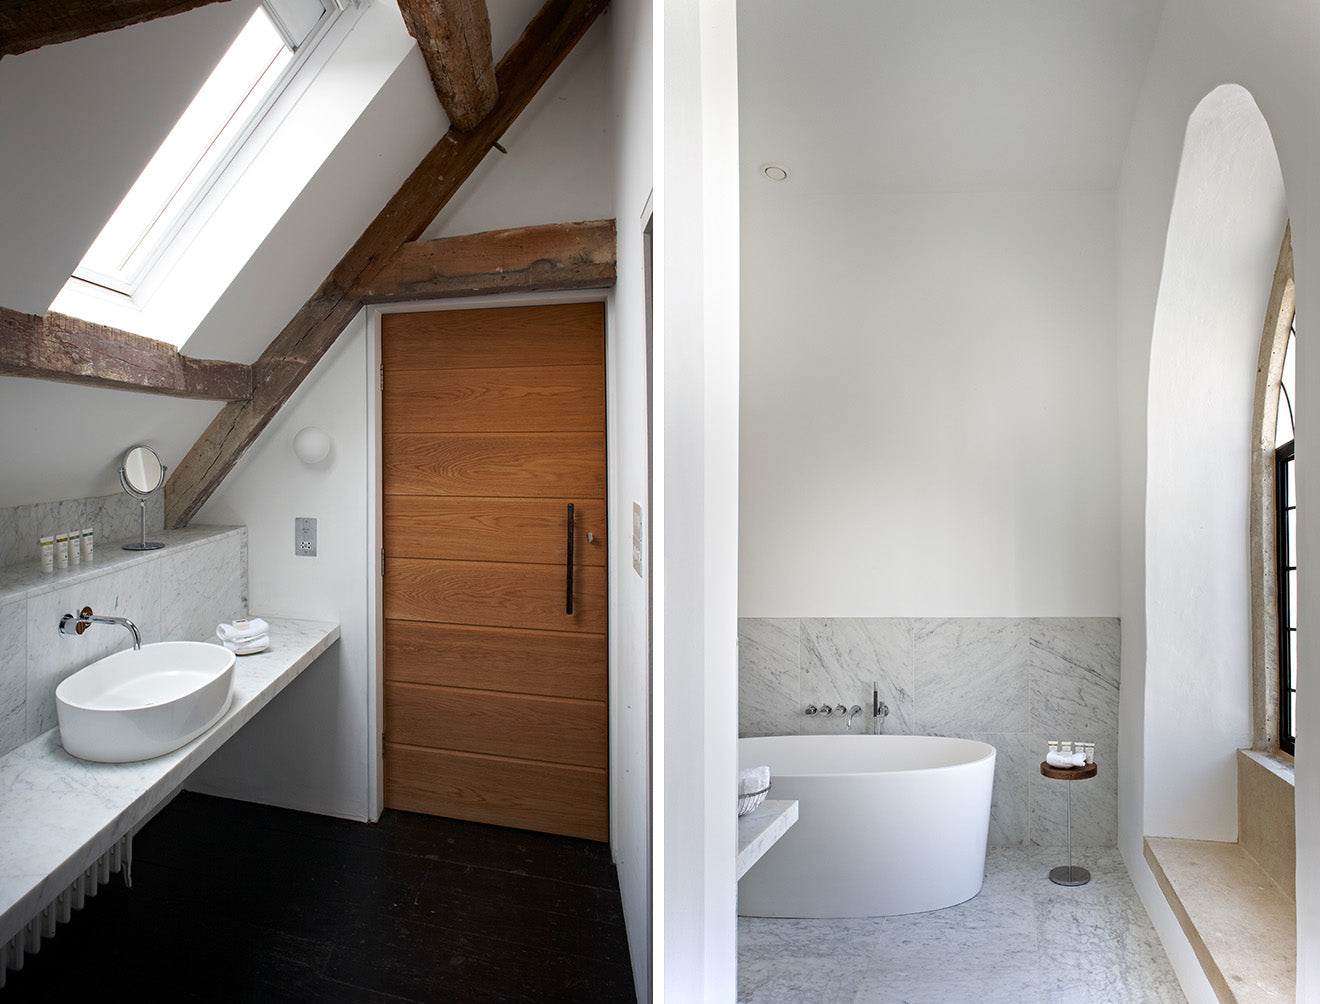 At The Chapel Hotel Somerset Luxury Bathroom Suites from Victoria + Albert